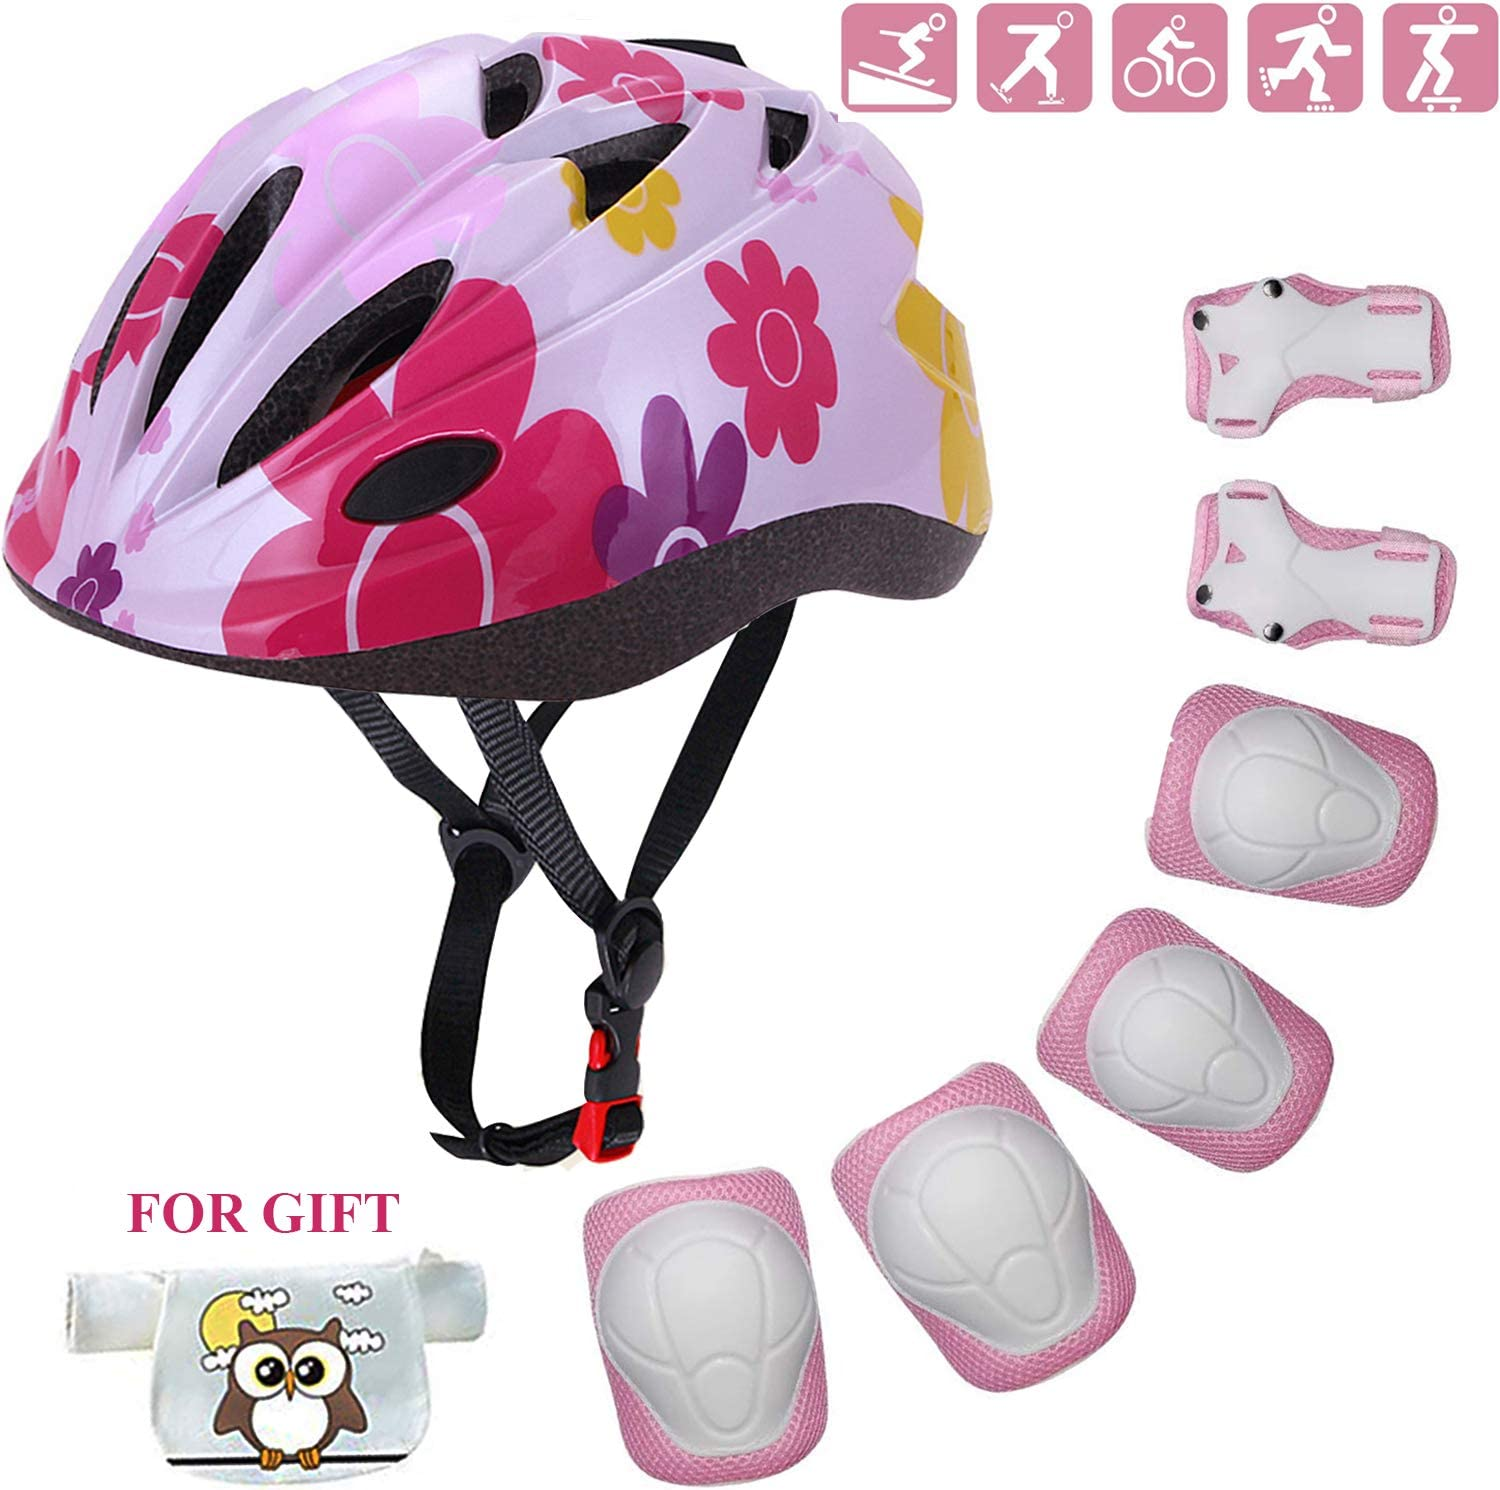 Kids Helmet Adjustable with Sports Protective Gear Set Knee Elbow Wrist Pads for Toddler Ages 4 to 10 Years Old Boys Girls Cycling Skating Scooter Helmet